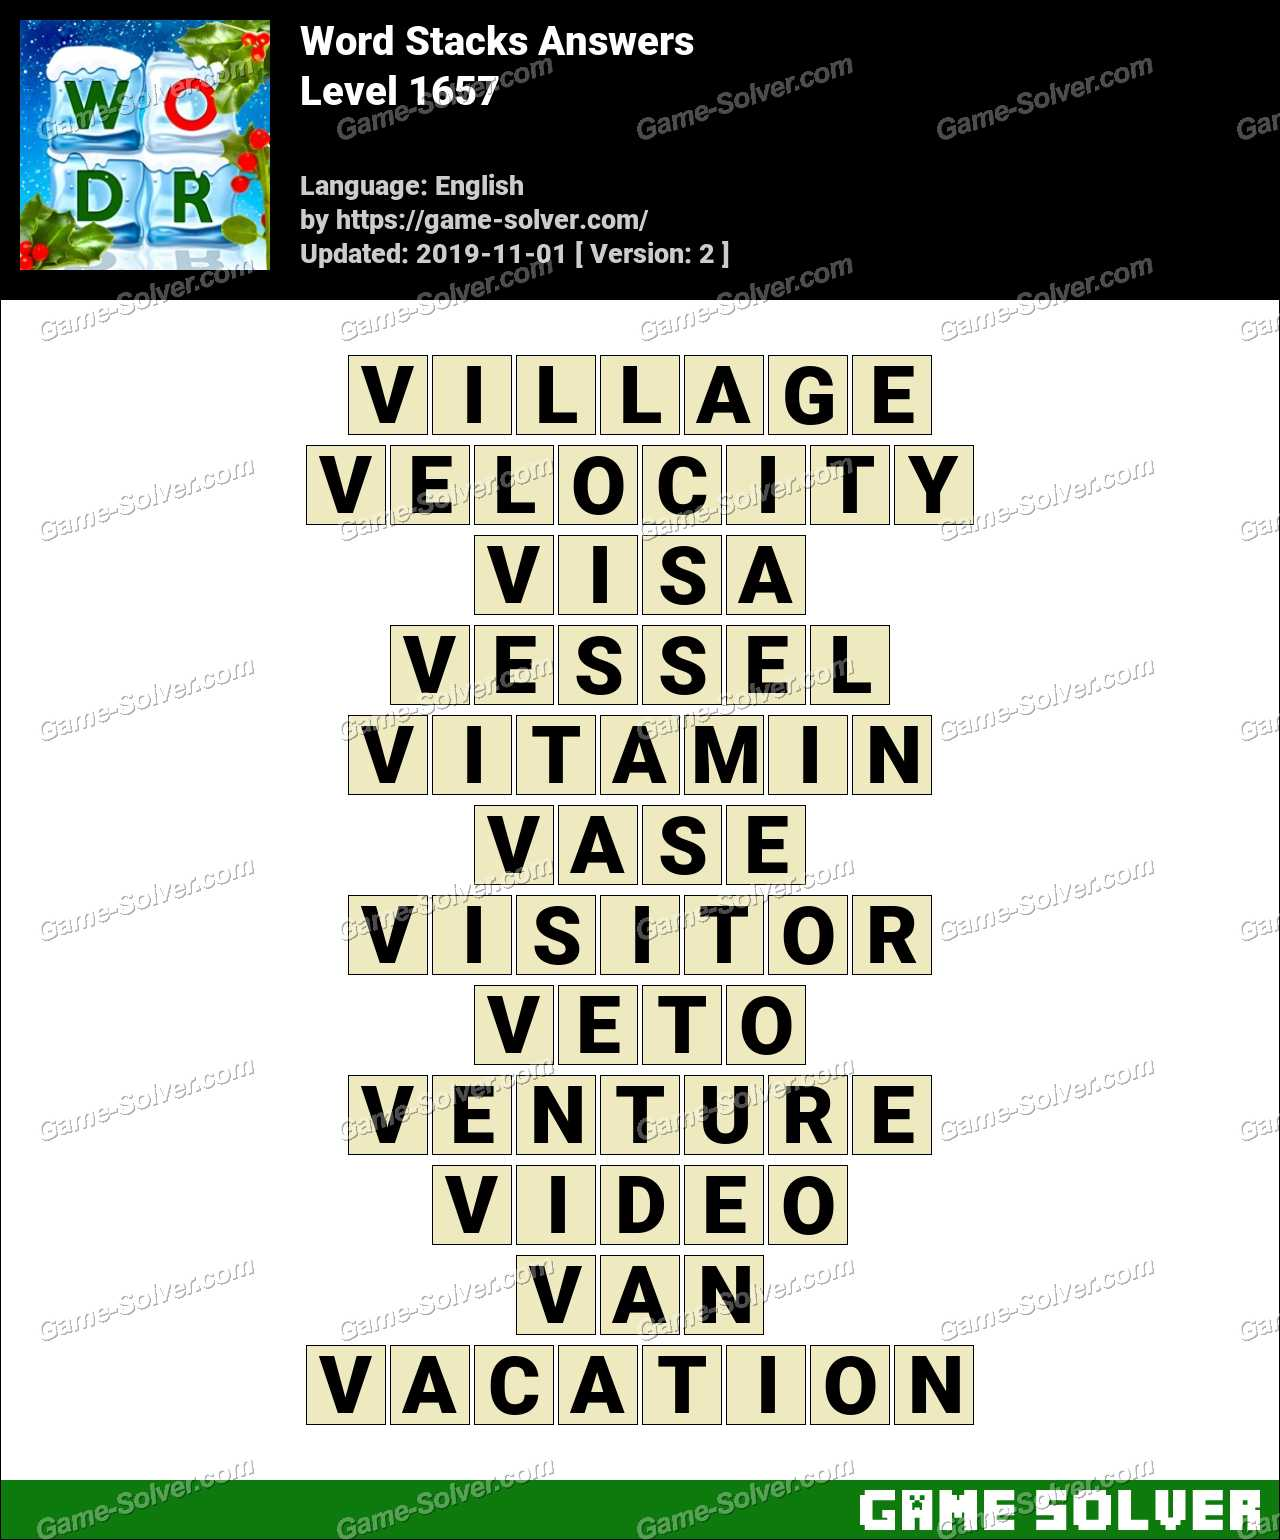 Word Stacks Level 1657 Answers